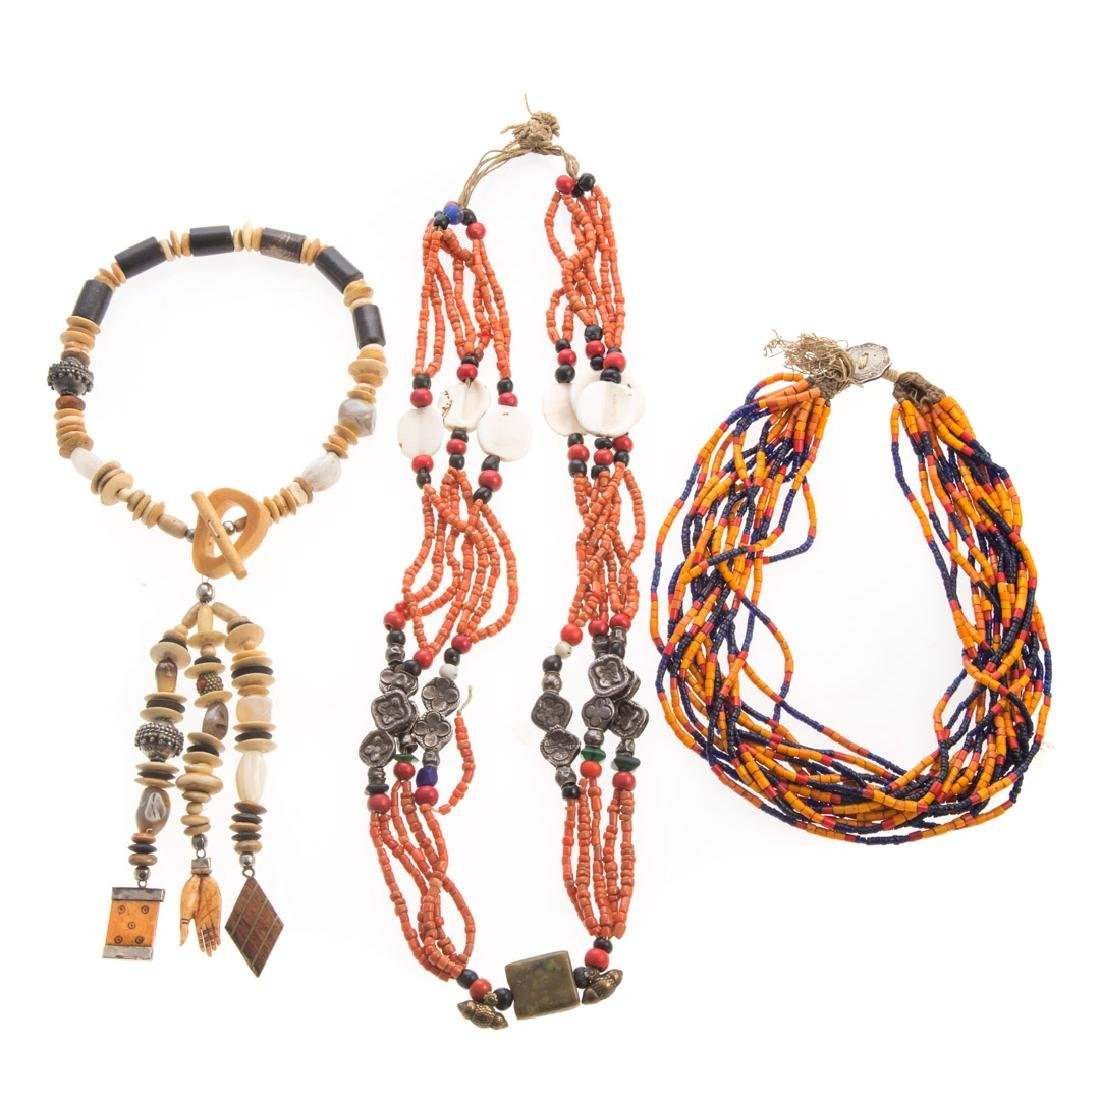 A Trio of Ethnic Necklaces from World Travels